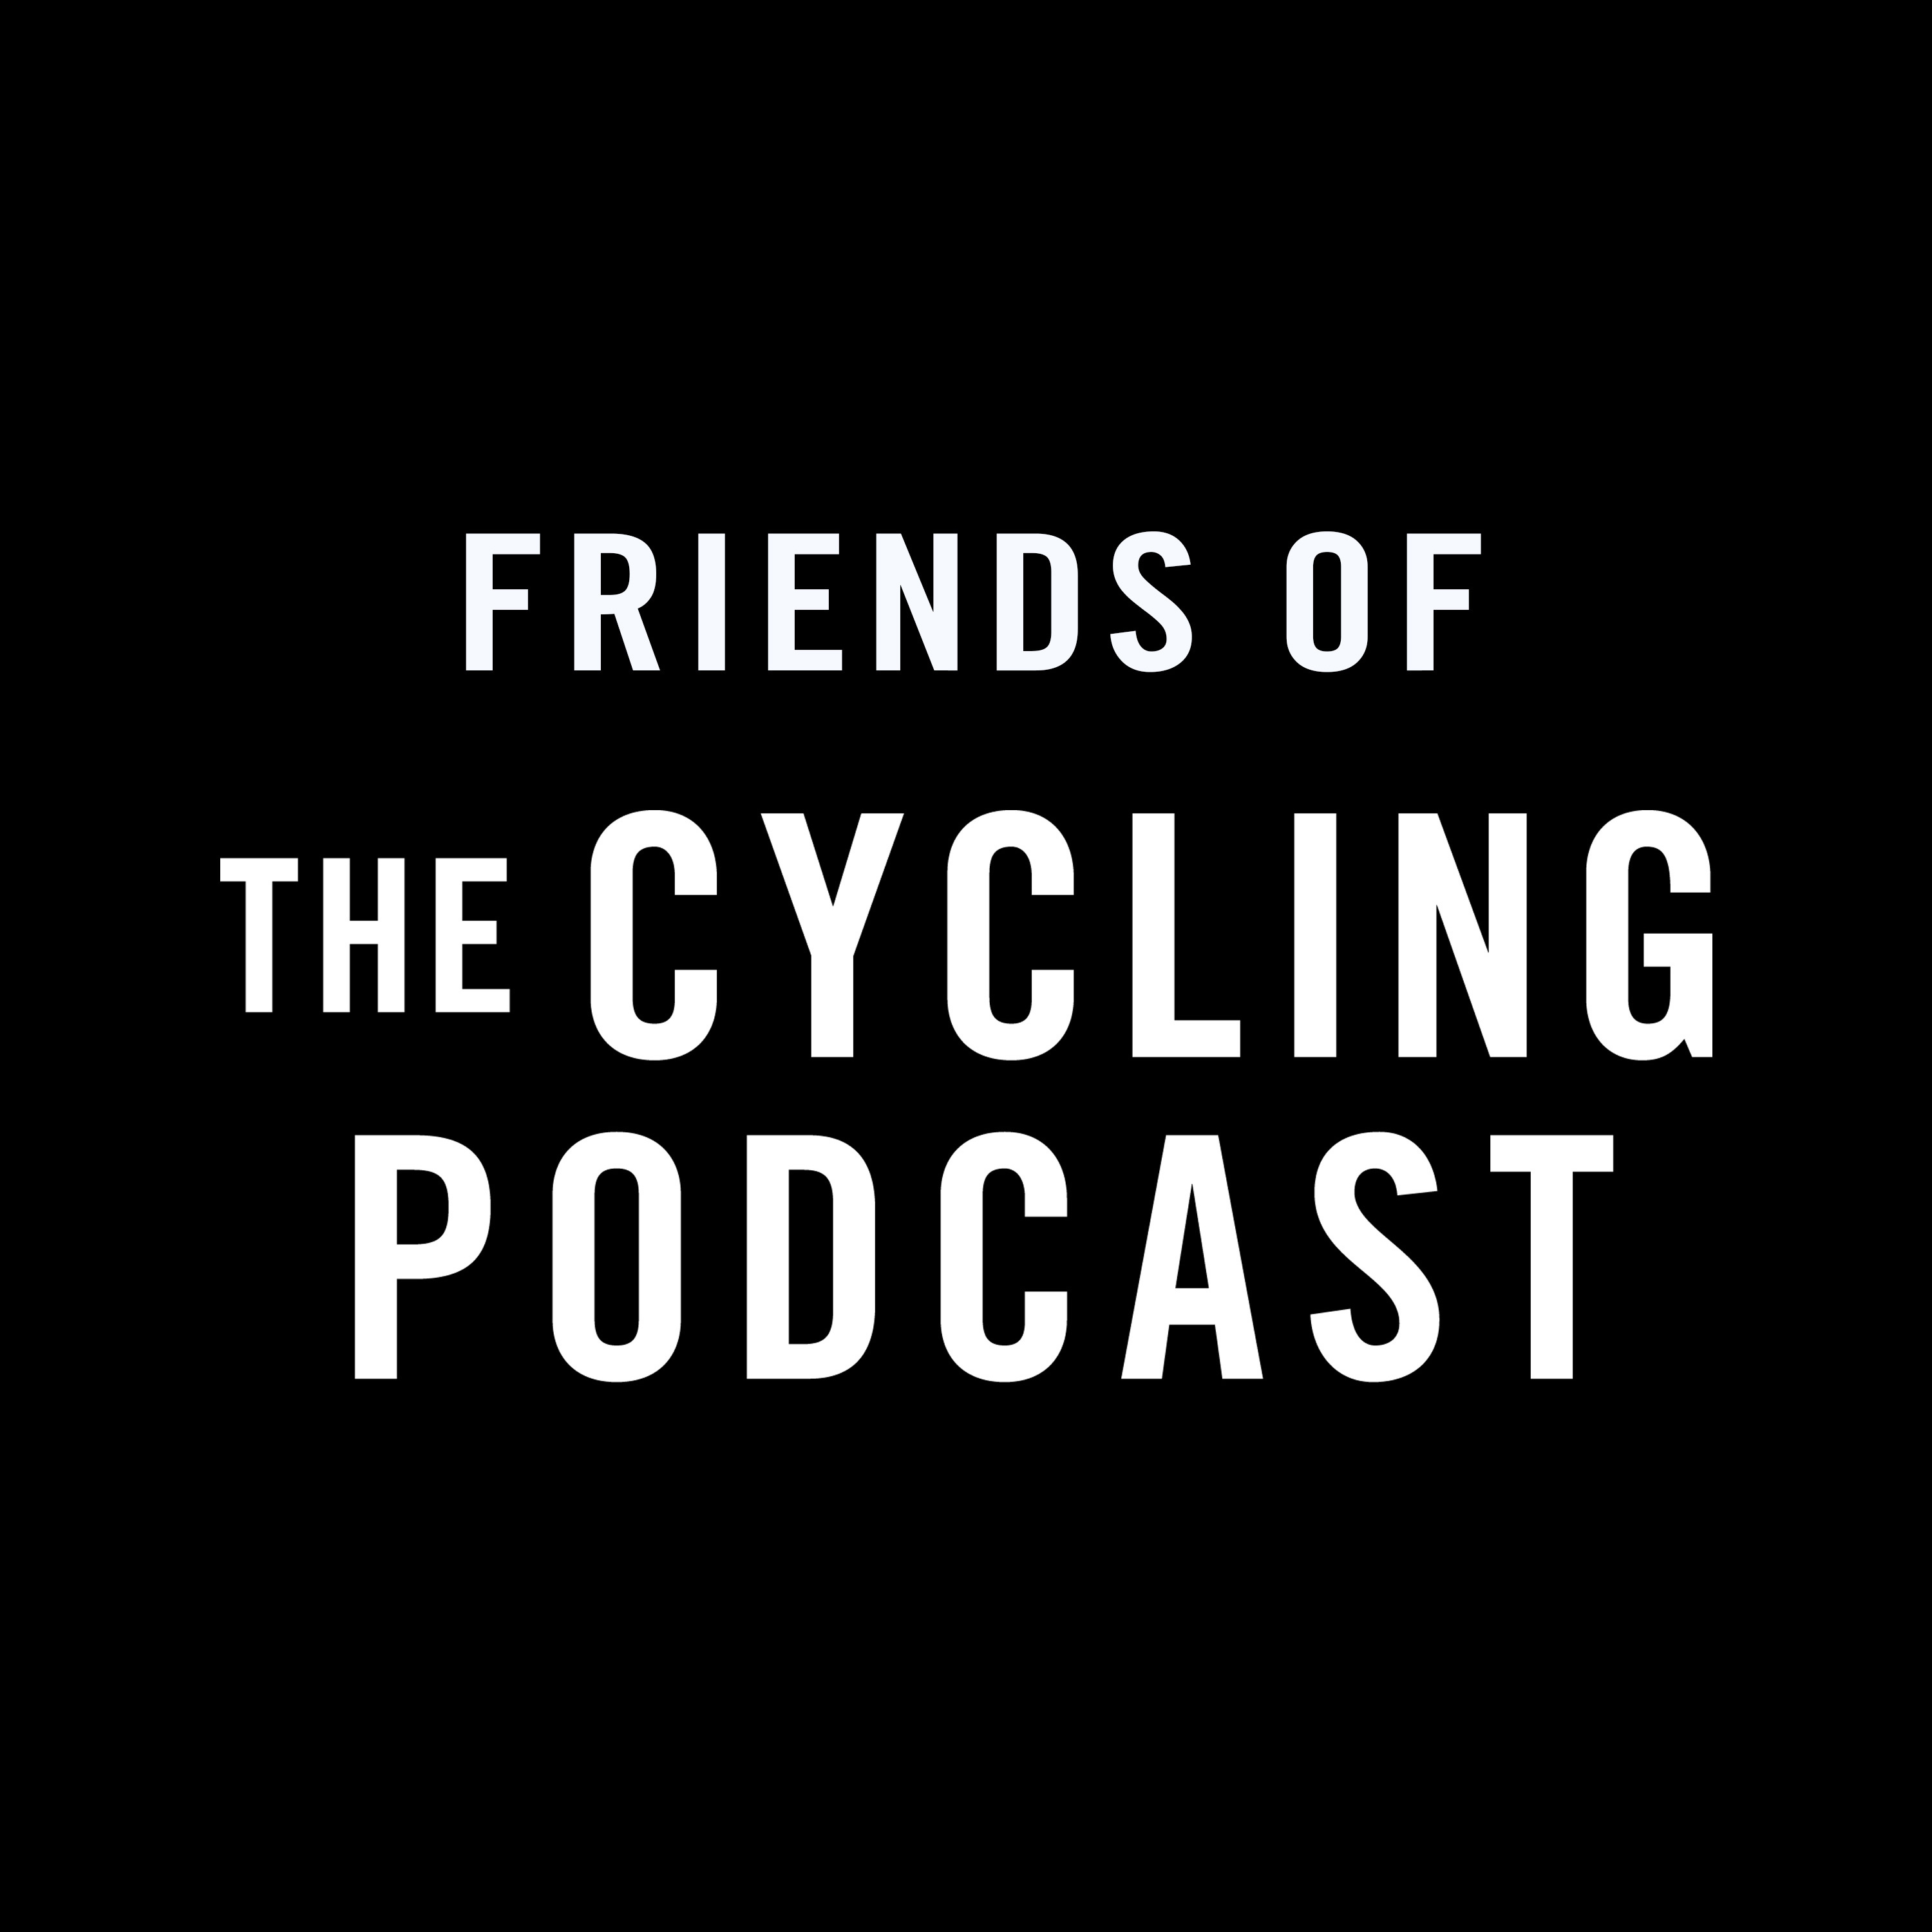 The Cycling Podcast logo